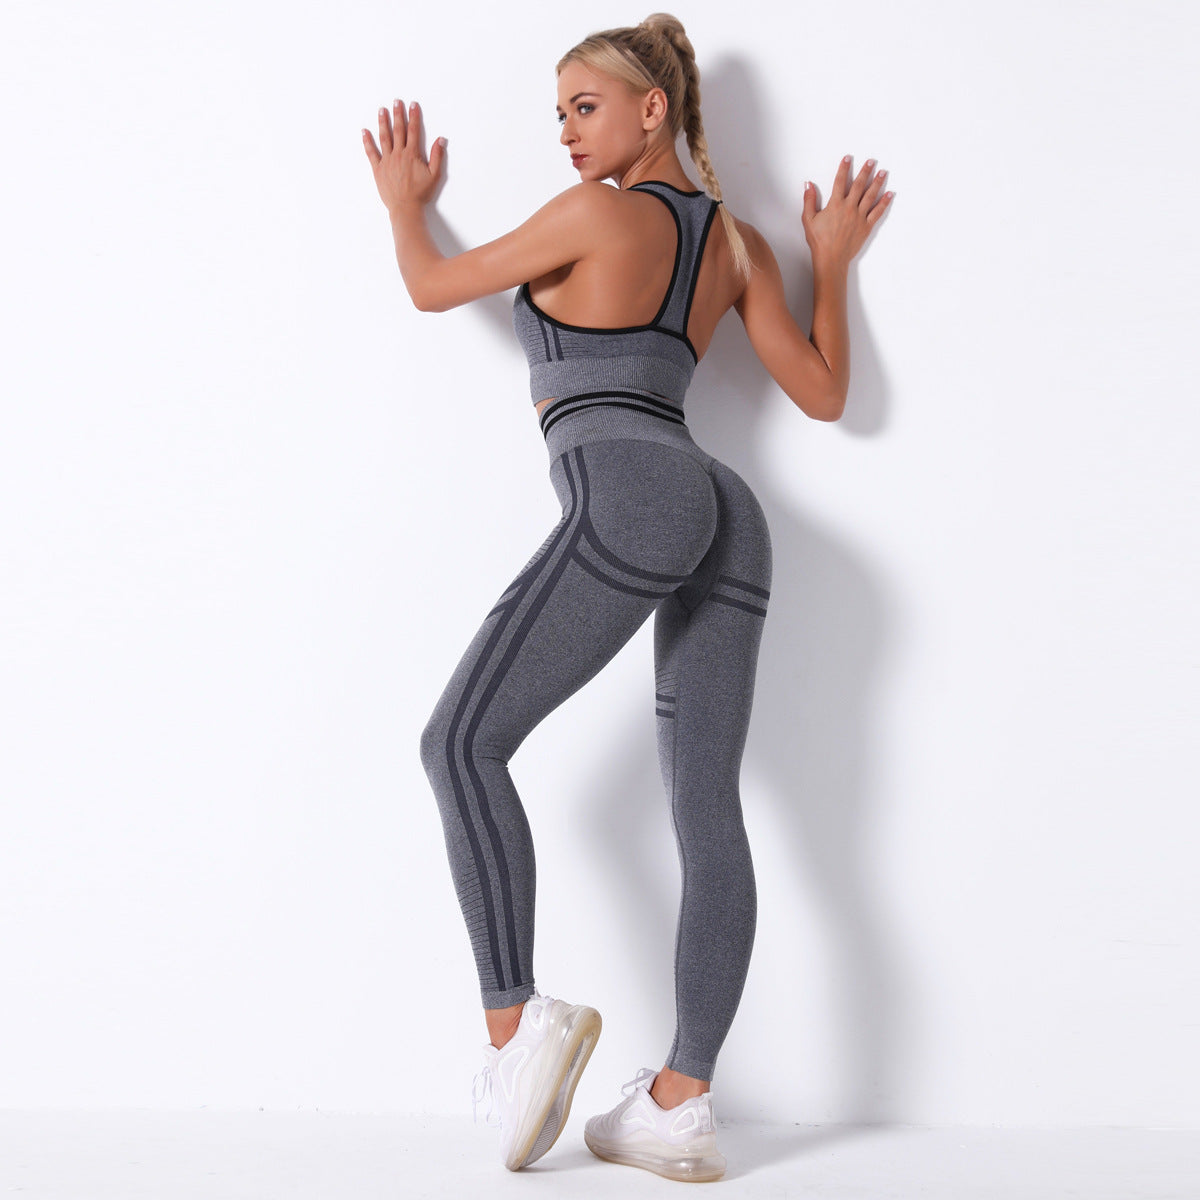 2020 Women Seamless Sexy Striped Hip Lift Yoga Suit Yoga Bra Fitness Suit Running Suit YS-043